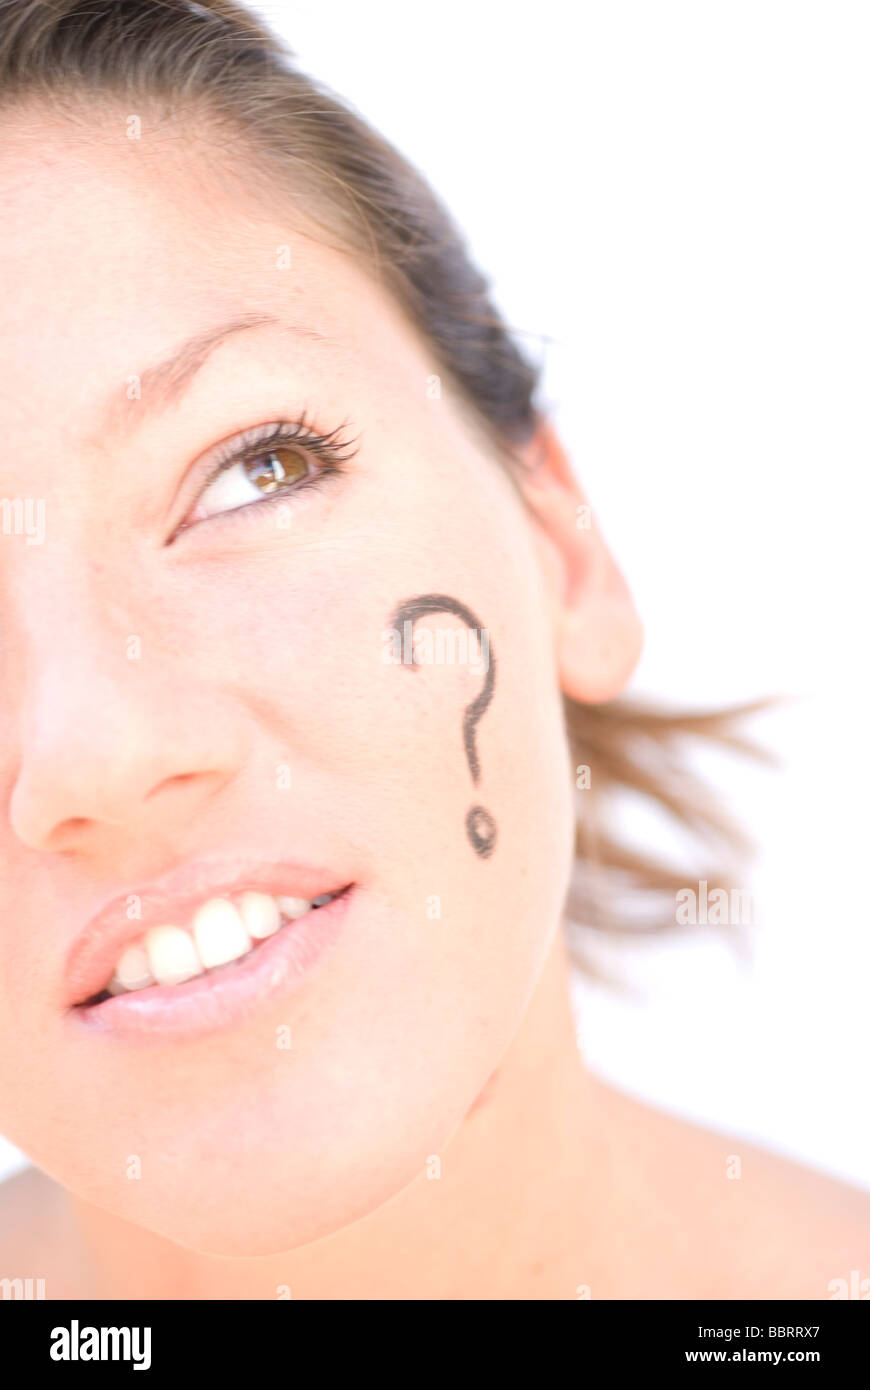 Question mark simbol painted in woman´s face and thinking on answer - Stock Image